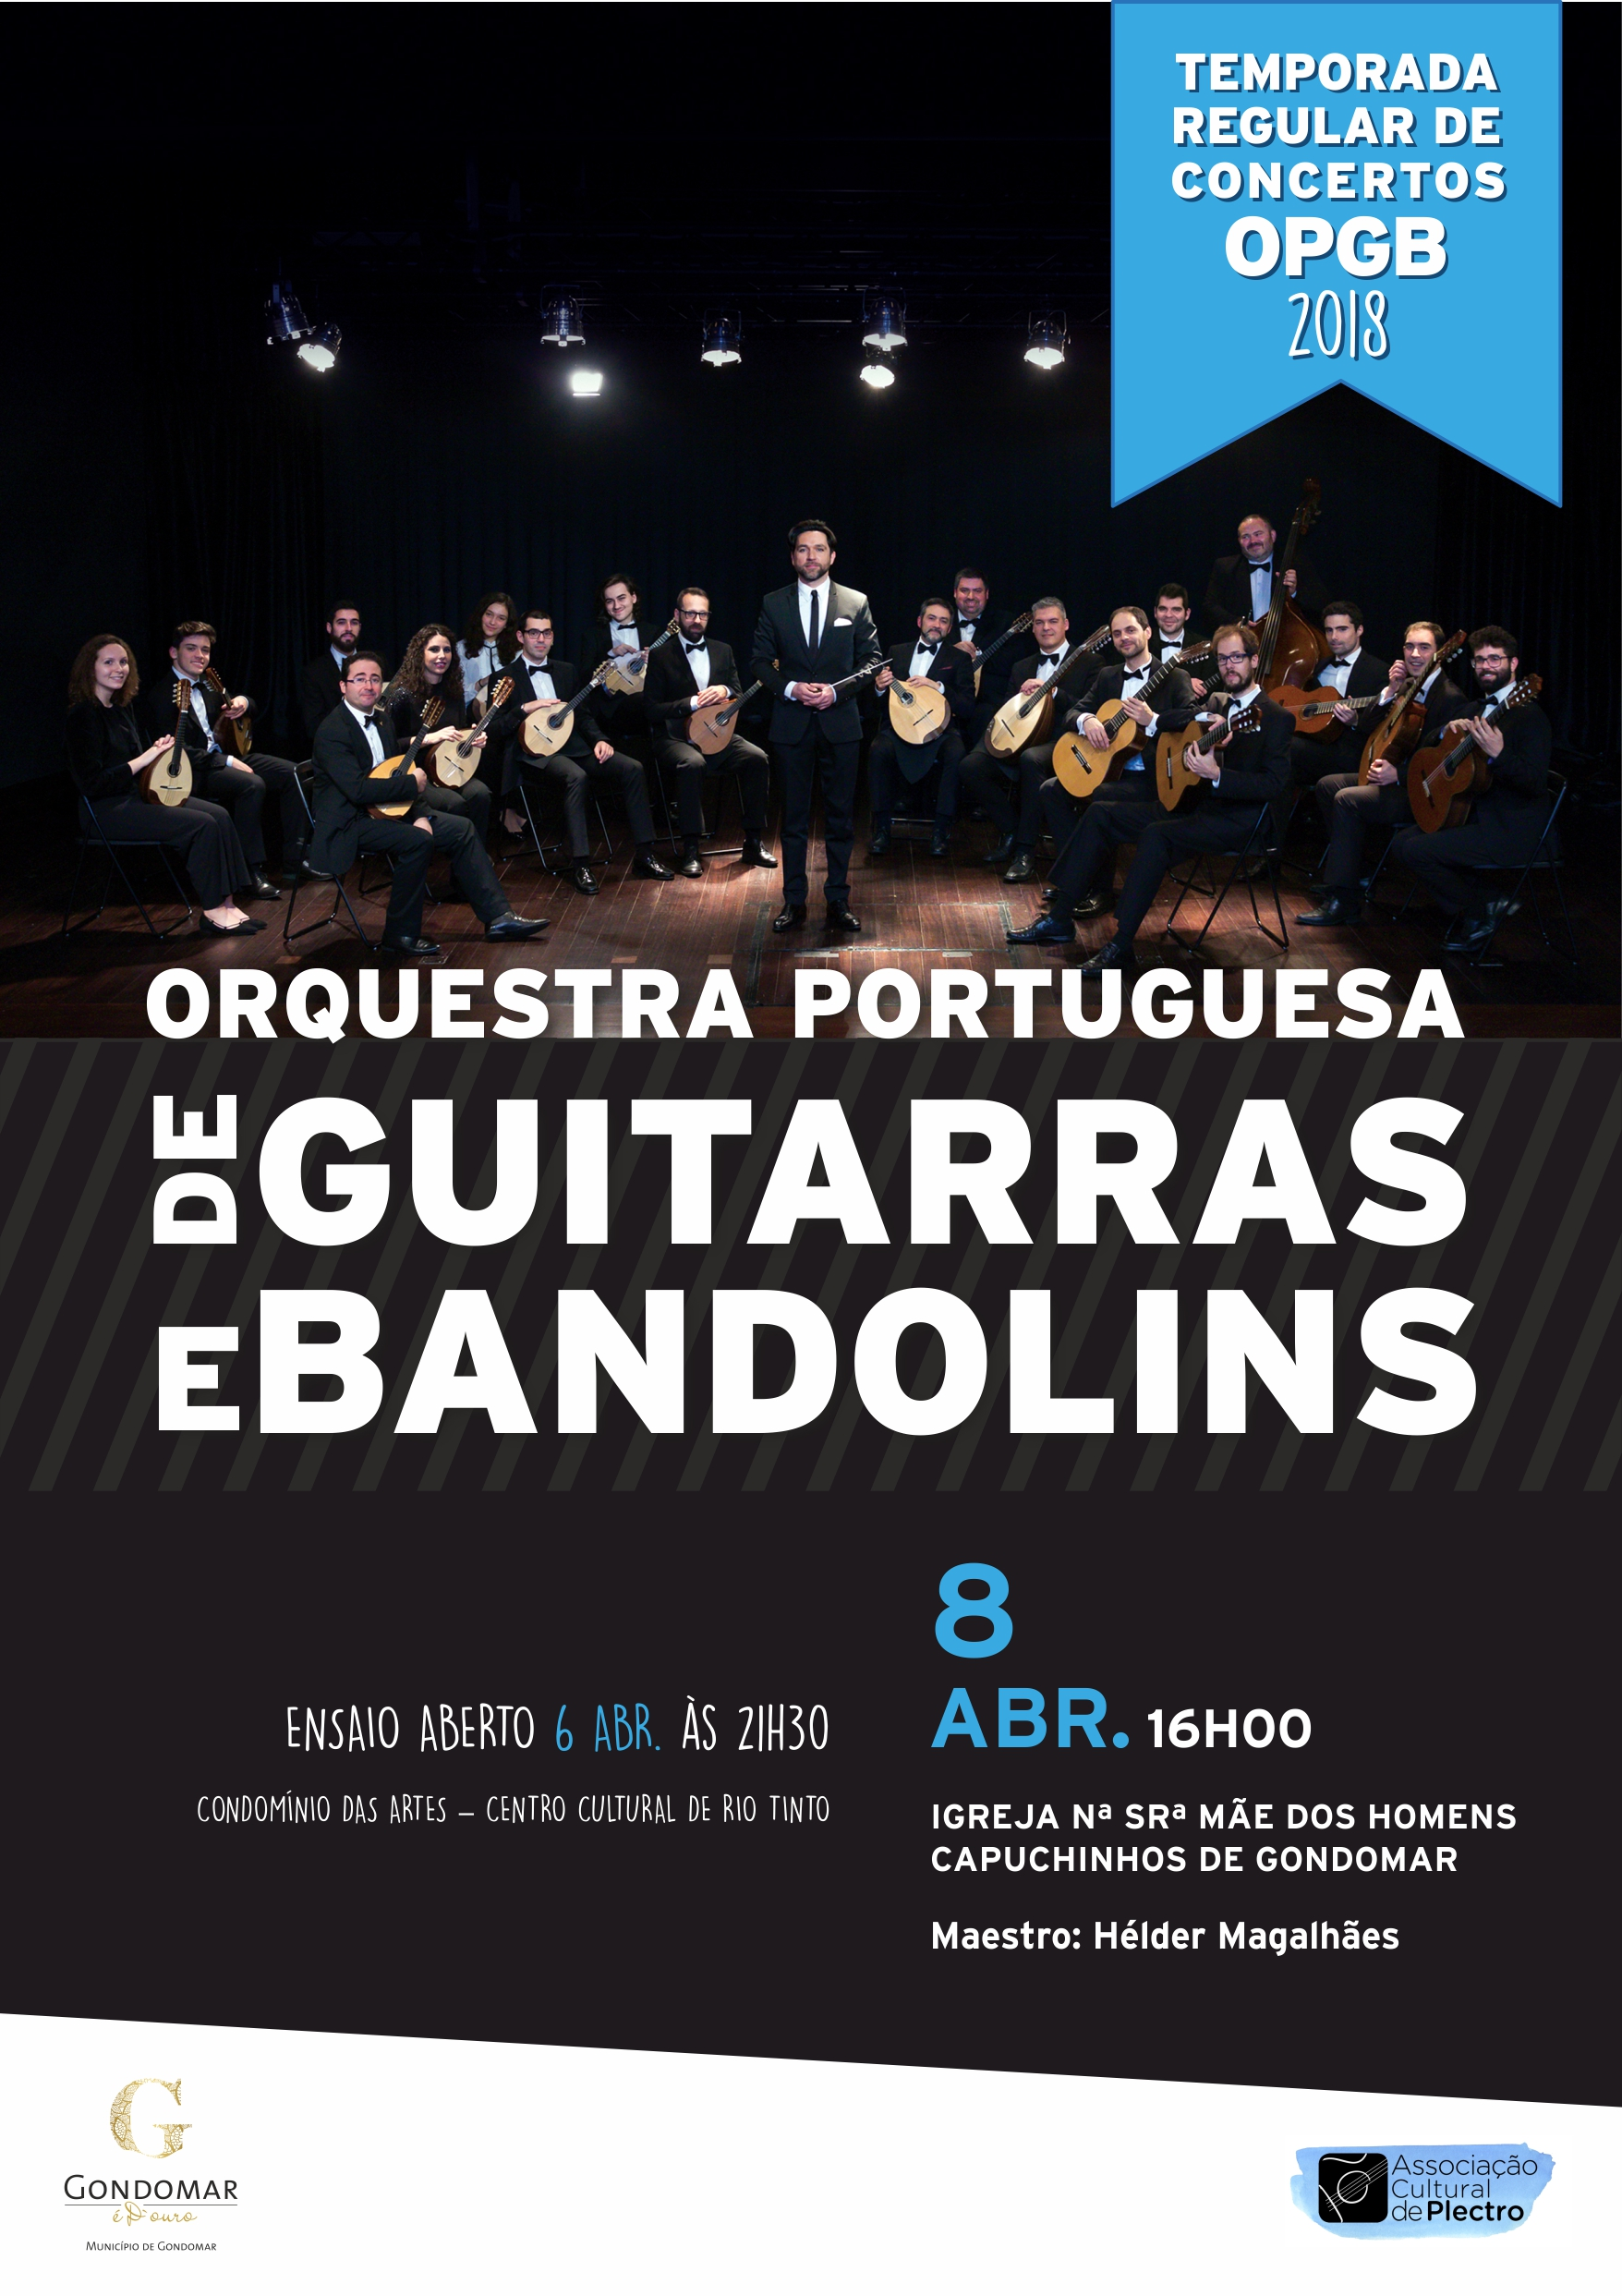 Cartaz Temporada Regular de Concertos OPGB 2018.jpg